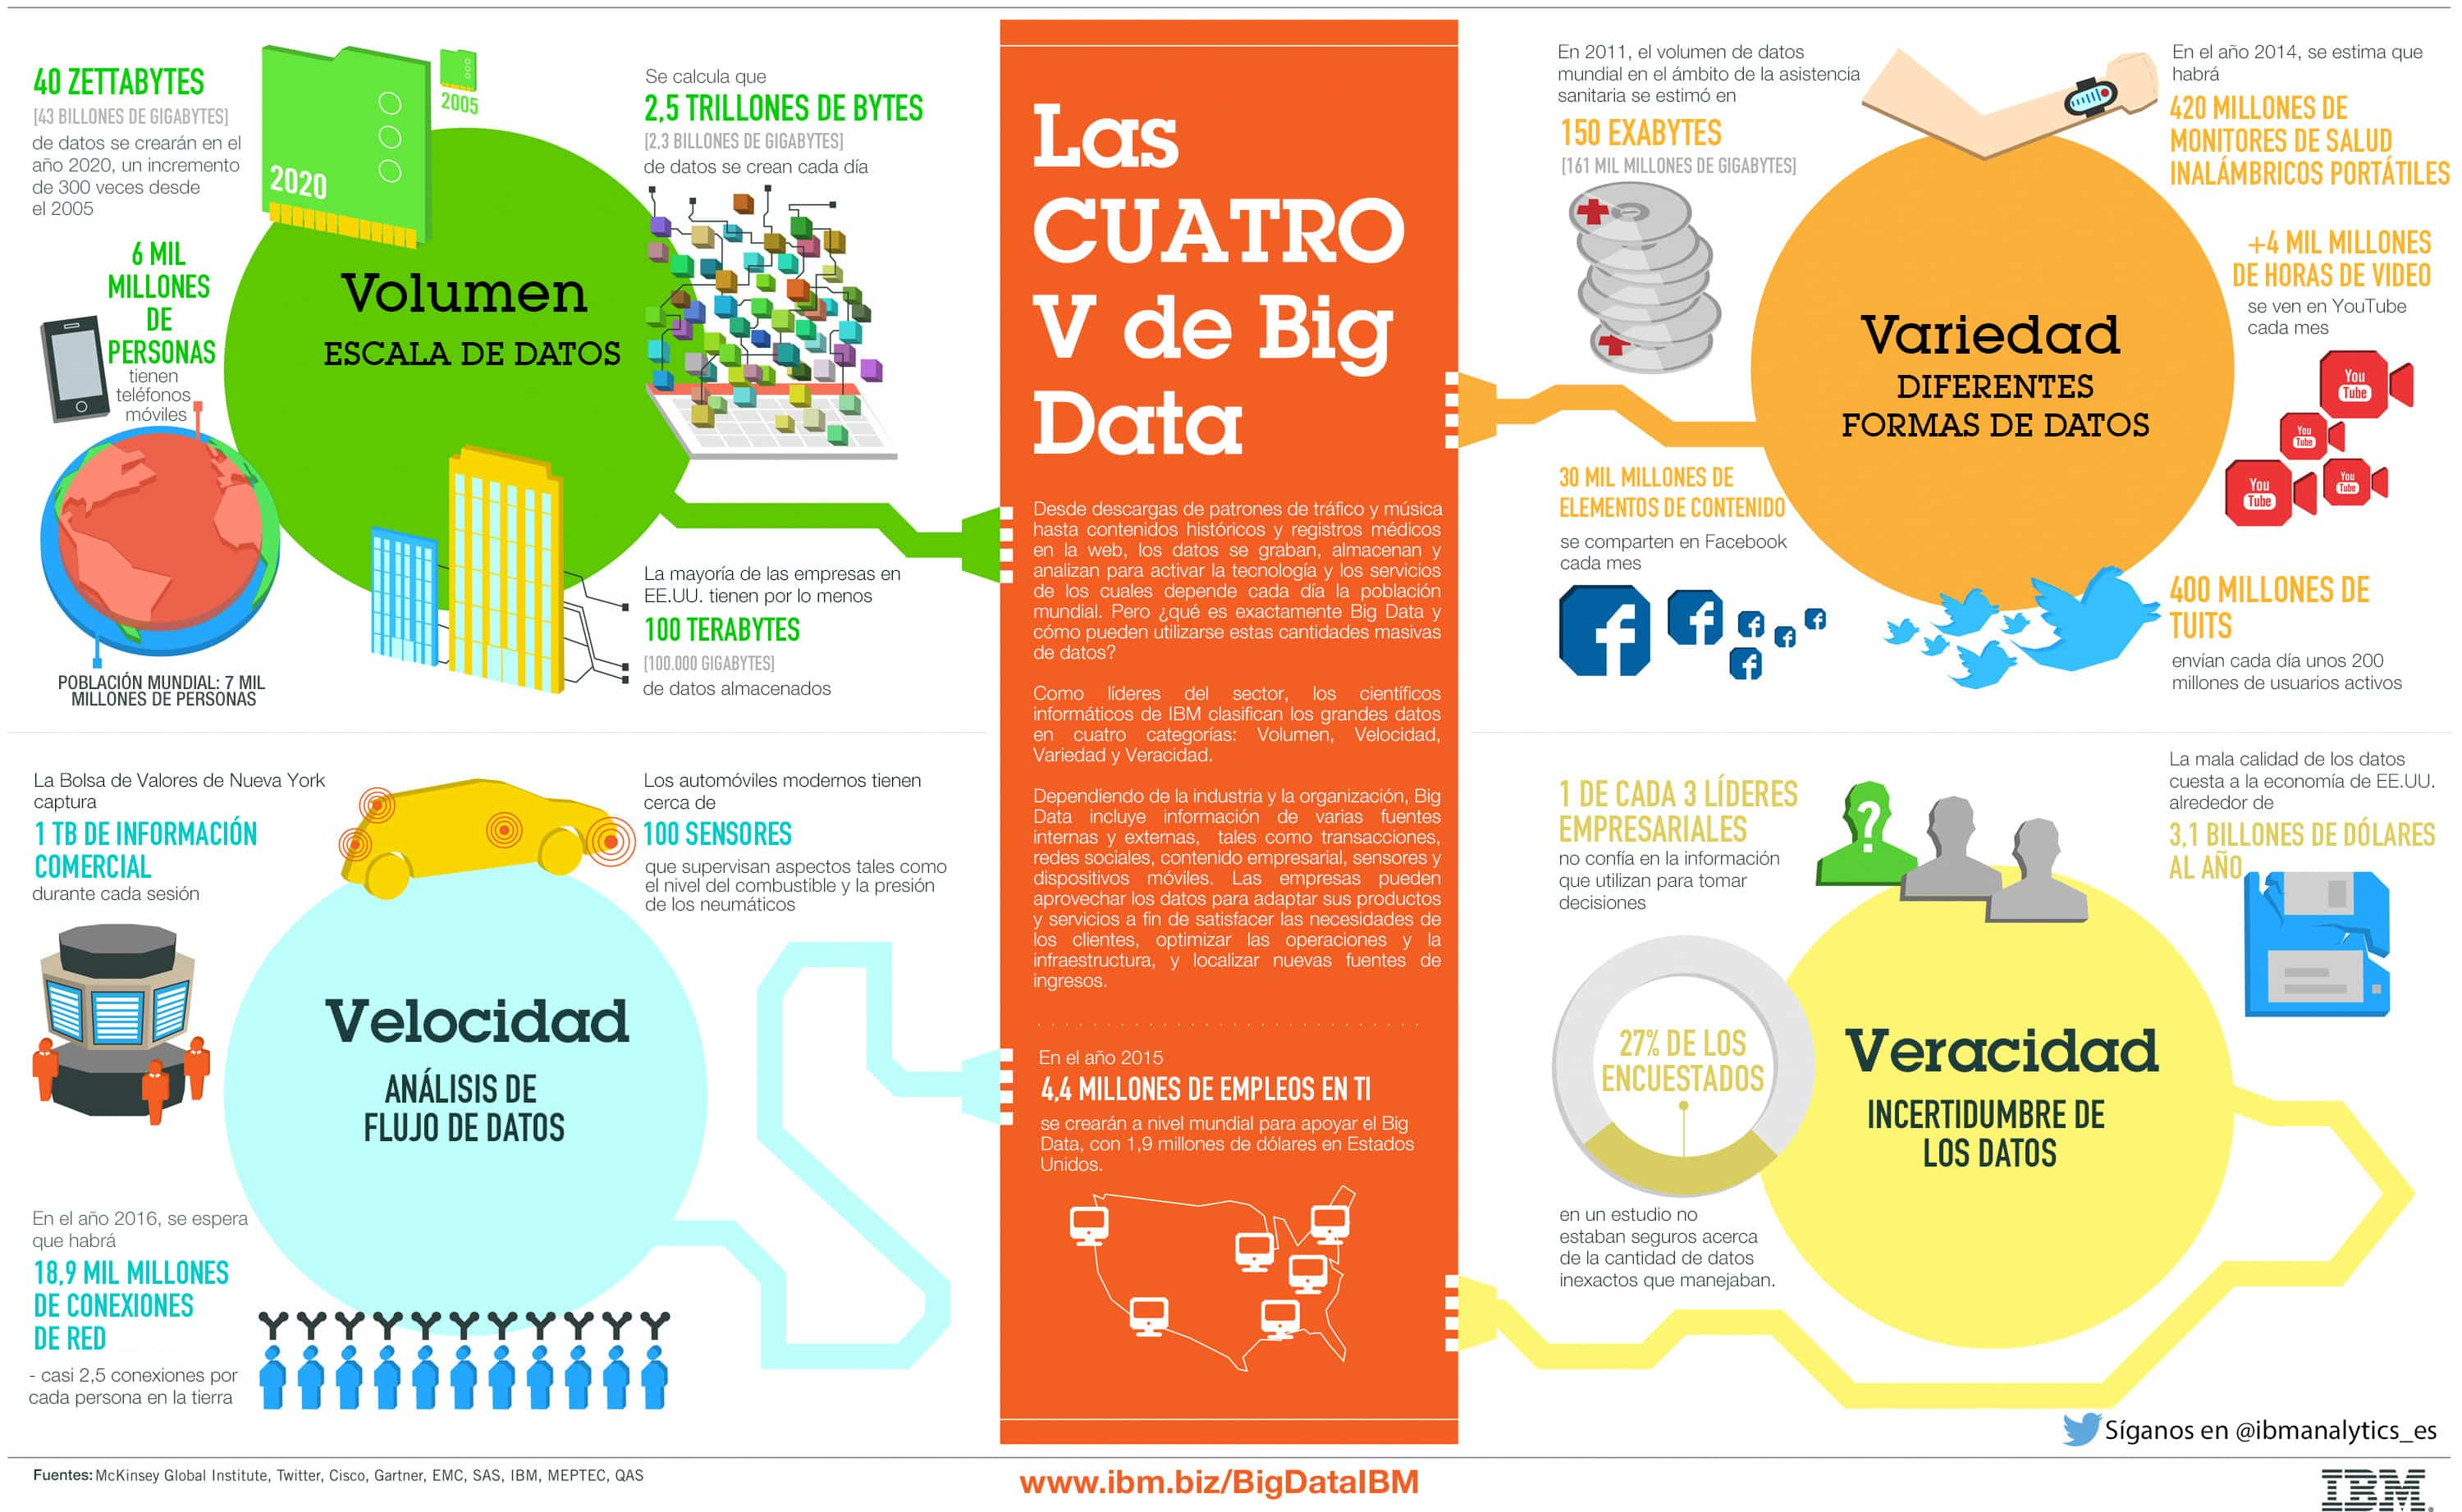 La cuatro V del Big Data